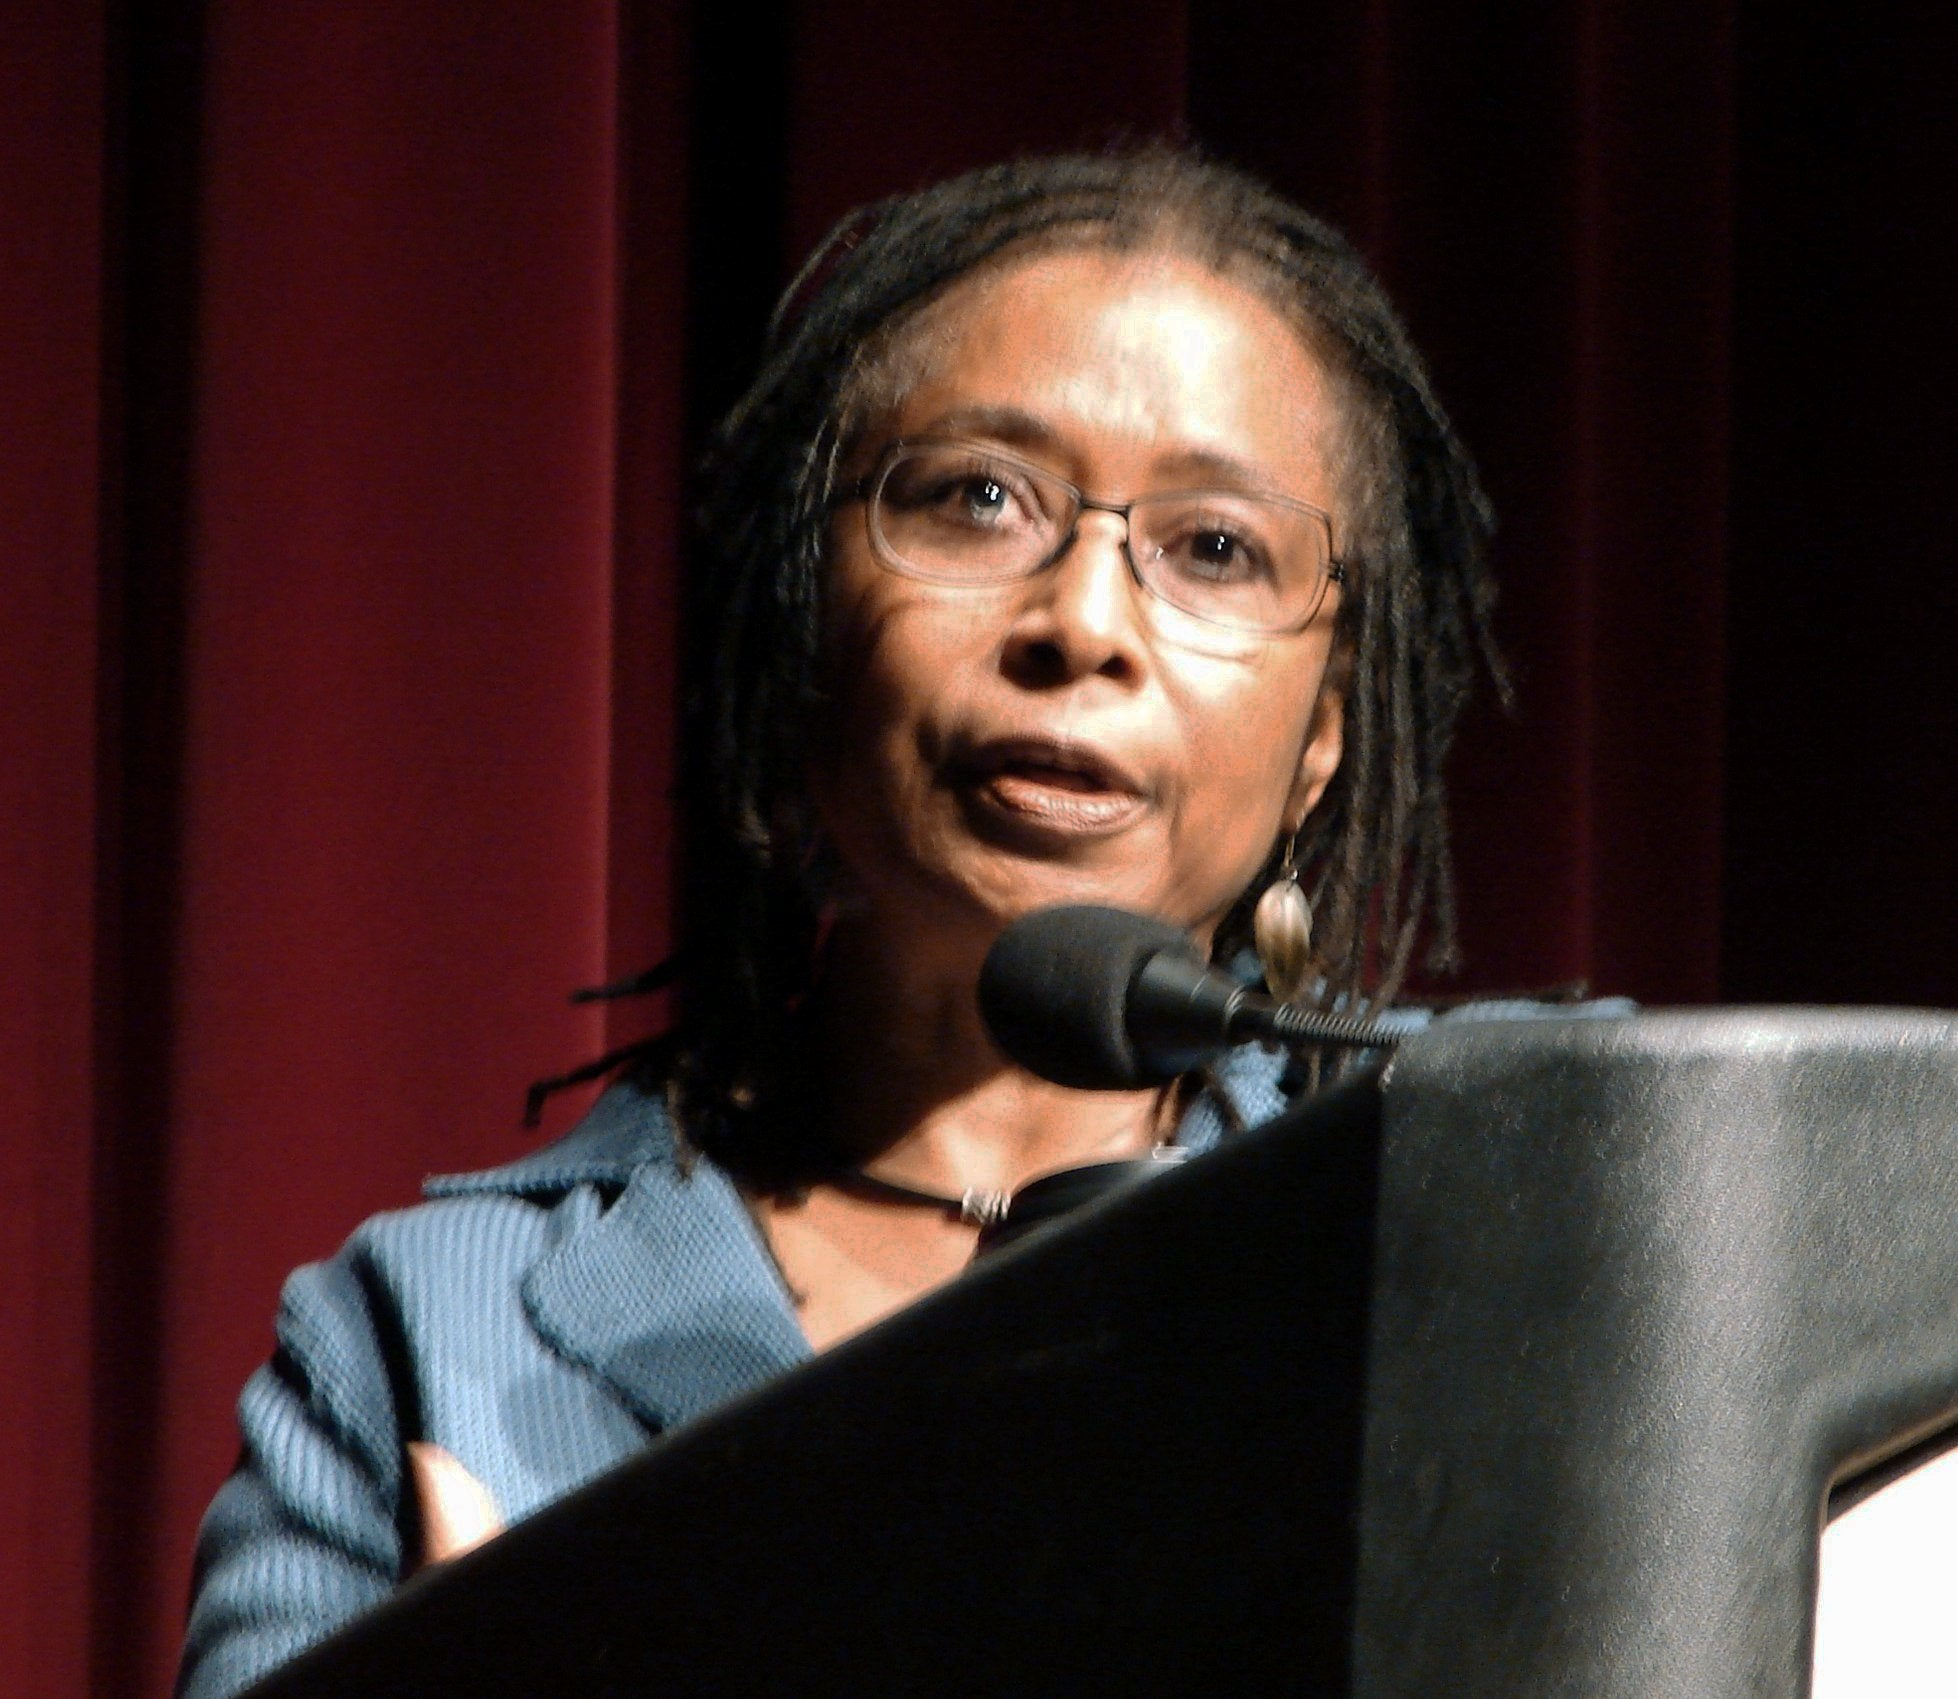 Photograph of Alice Walker making a speech at a lectern